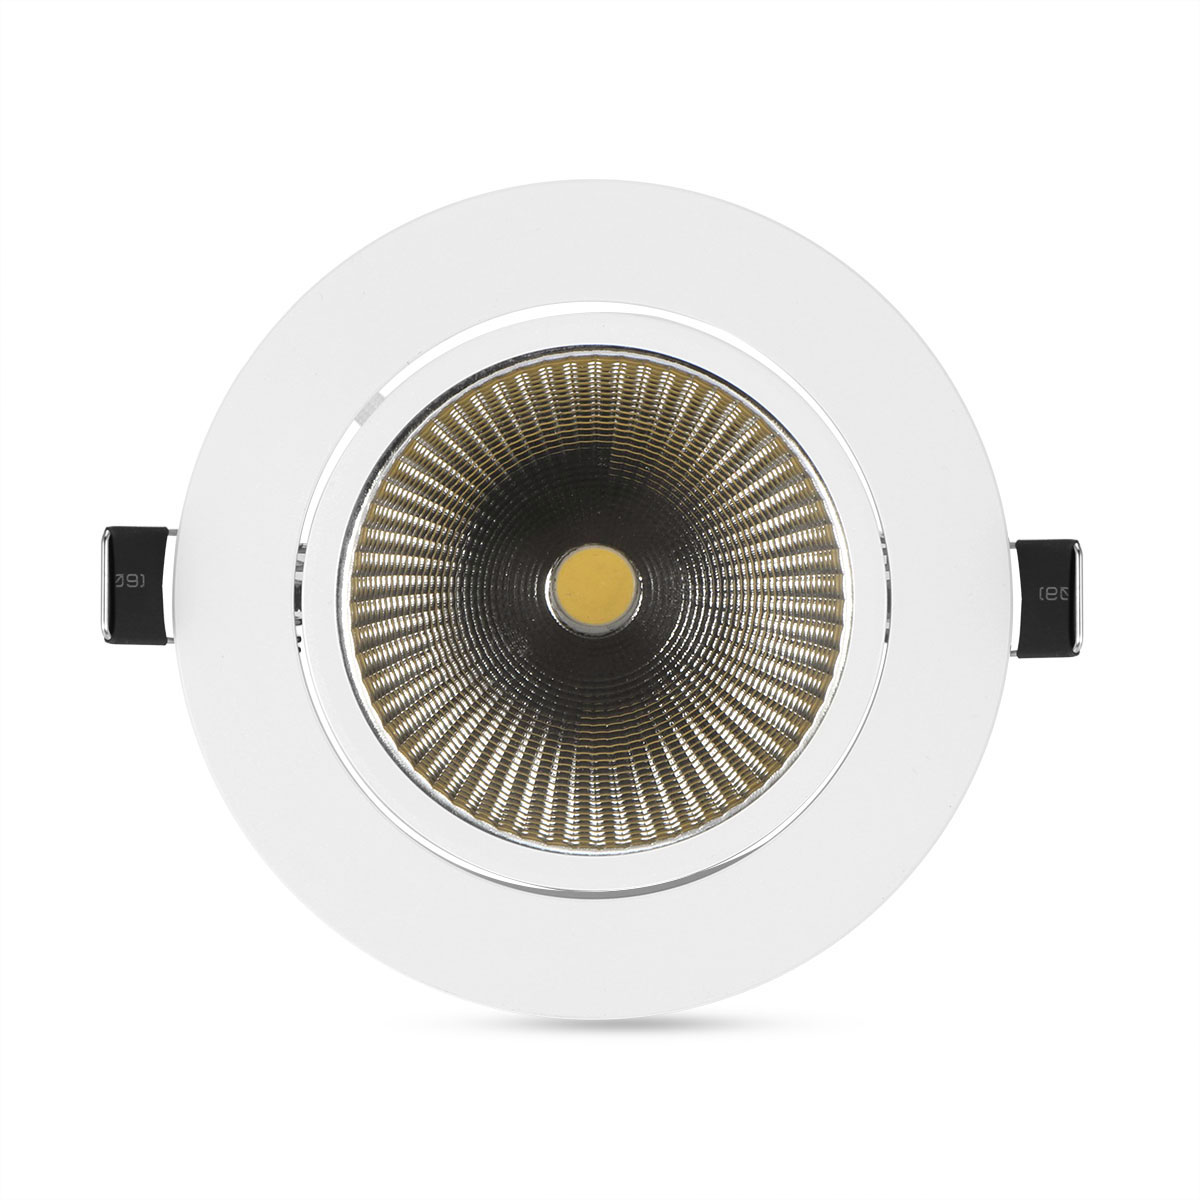 Led Ceiling Spotlight Fixtures: Warm Cool White AC 100 245V COB LED Ceiling Spotlight 7W